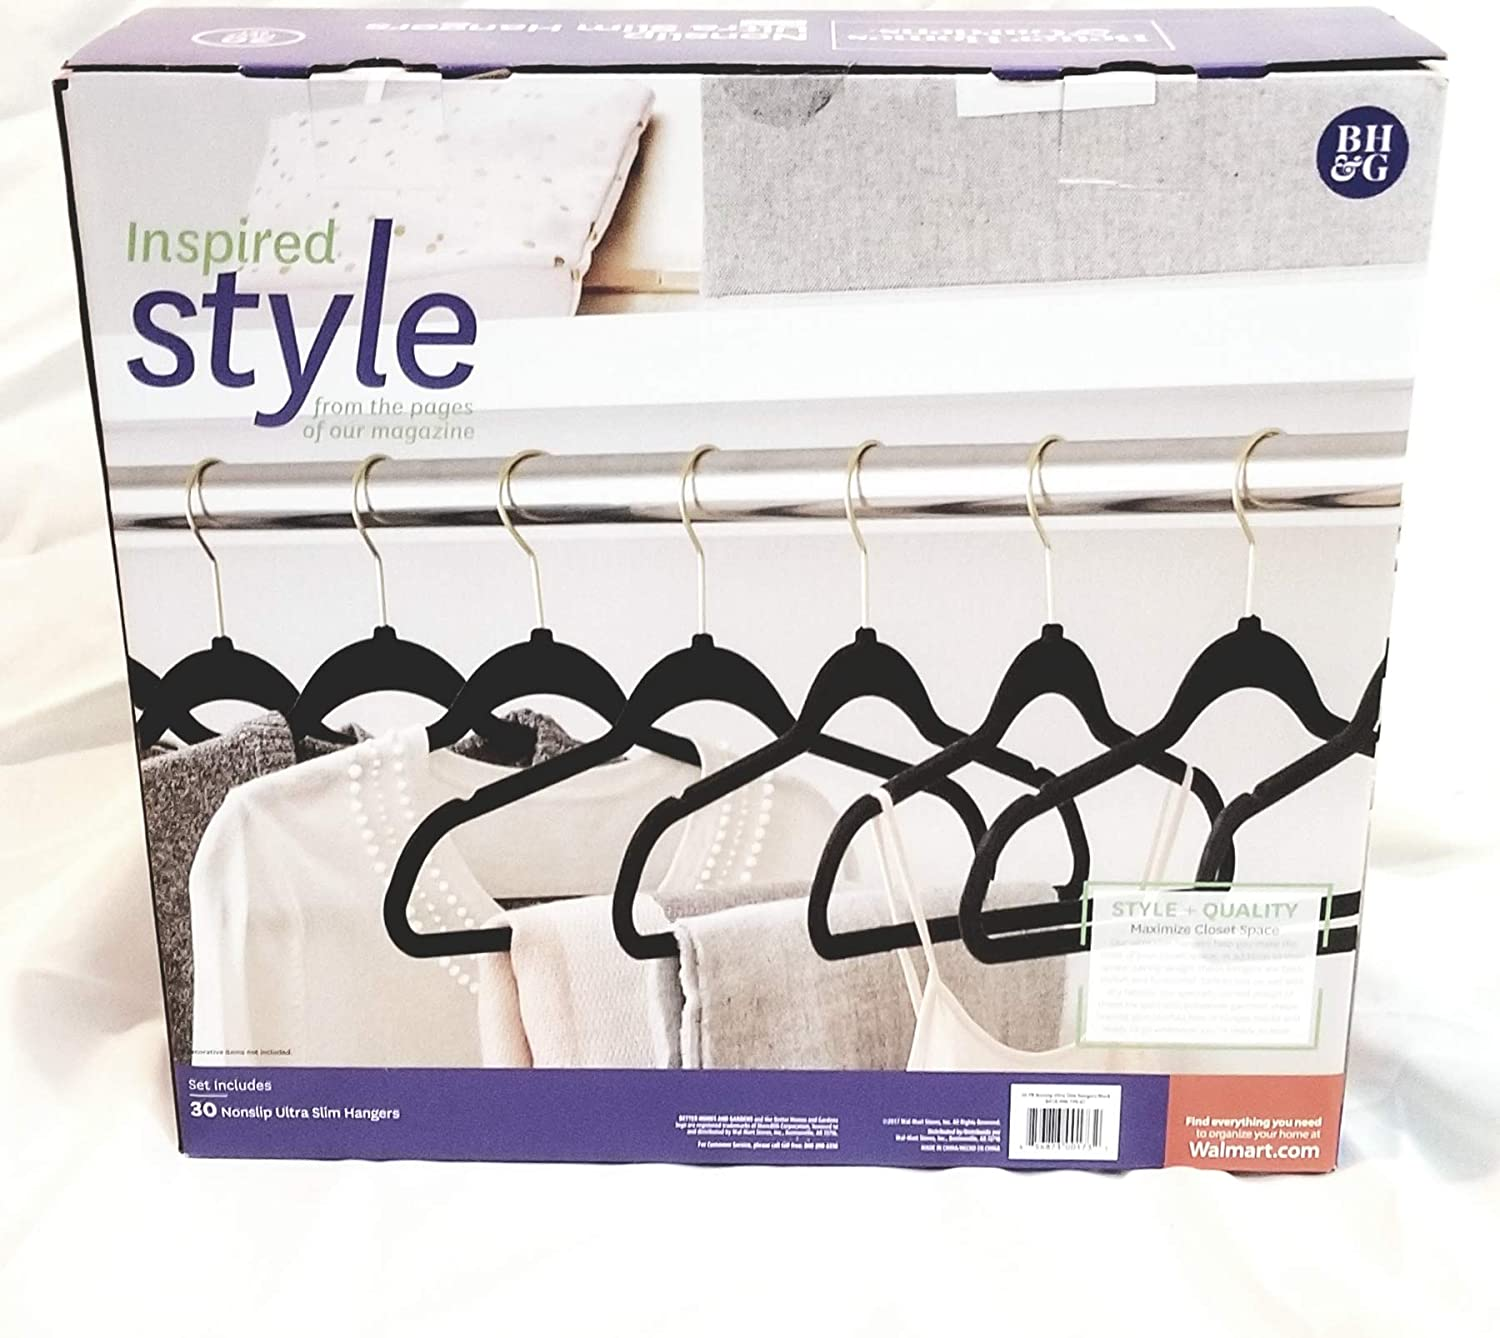 Better Homes and Garden Nonslip Ultra Slim Hangers (Black)